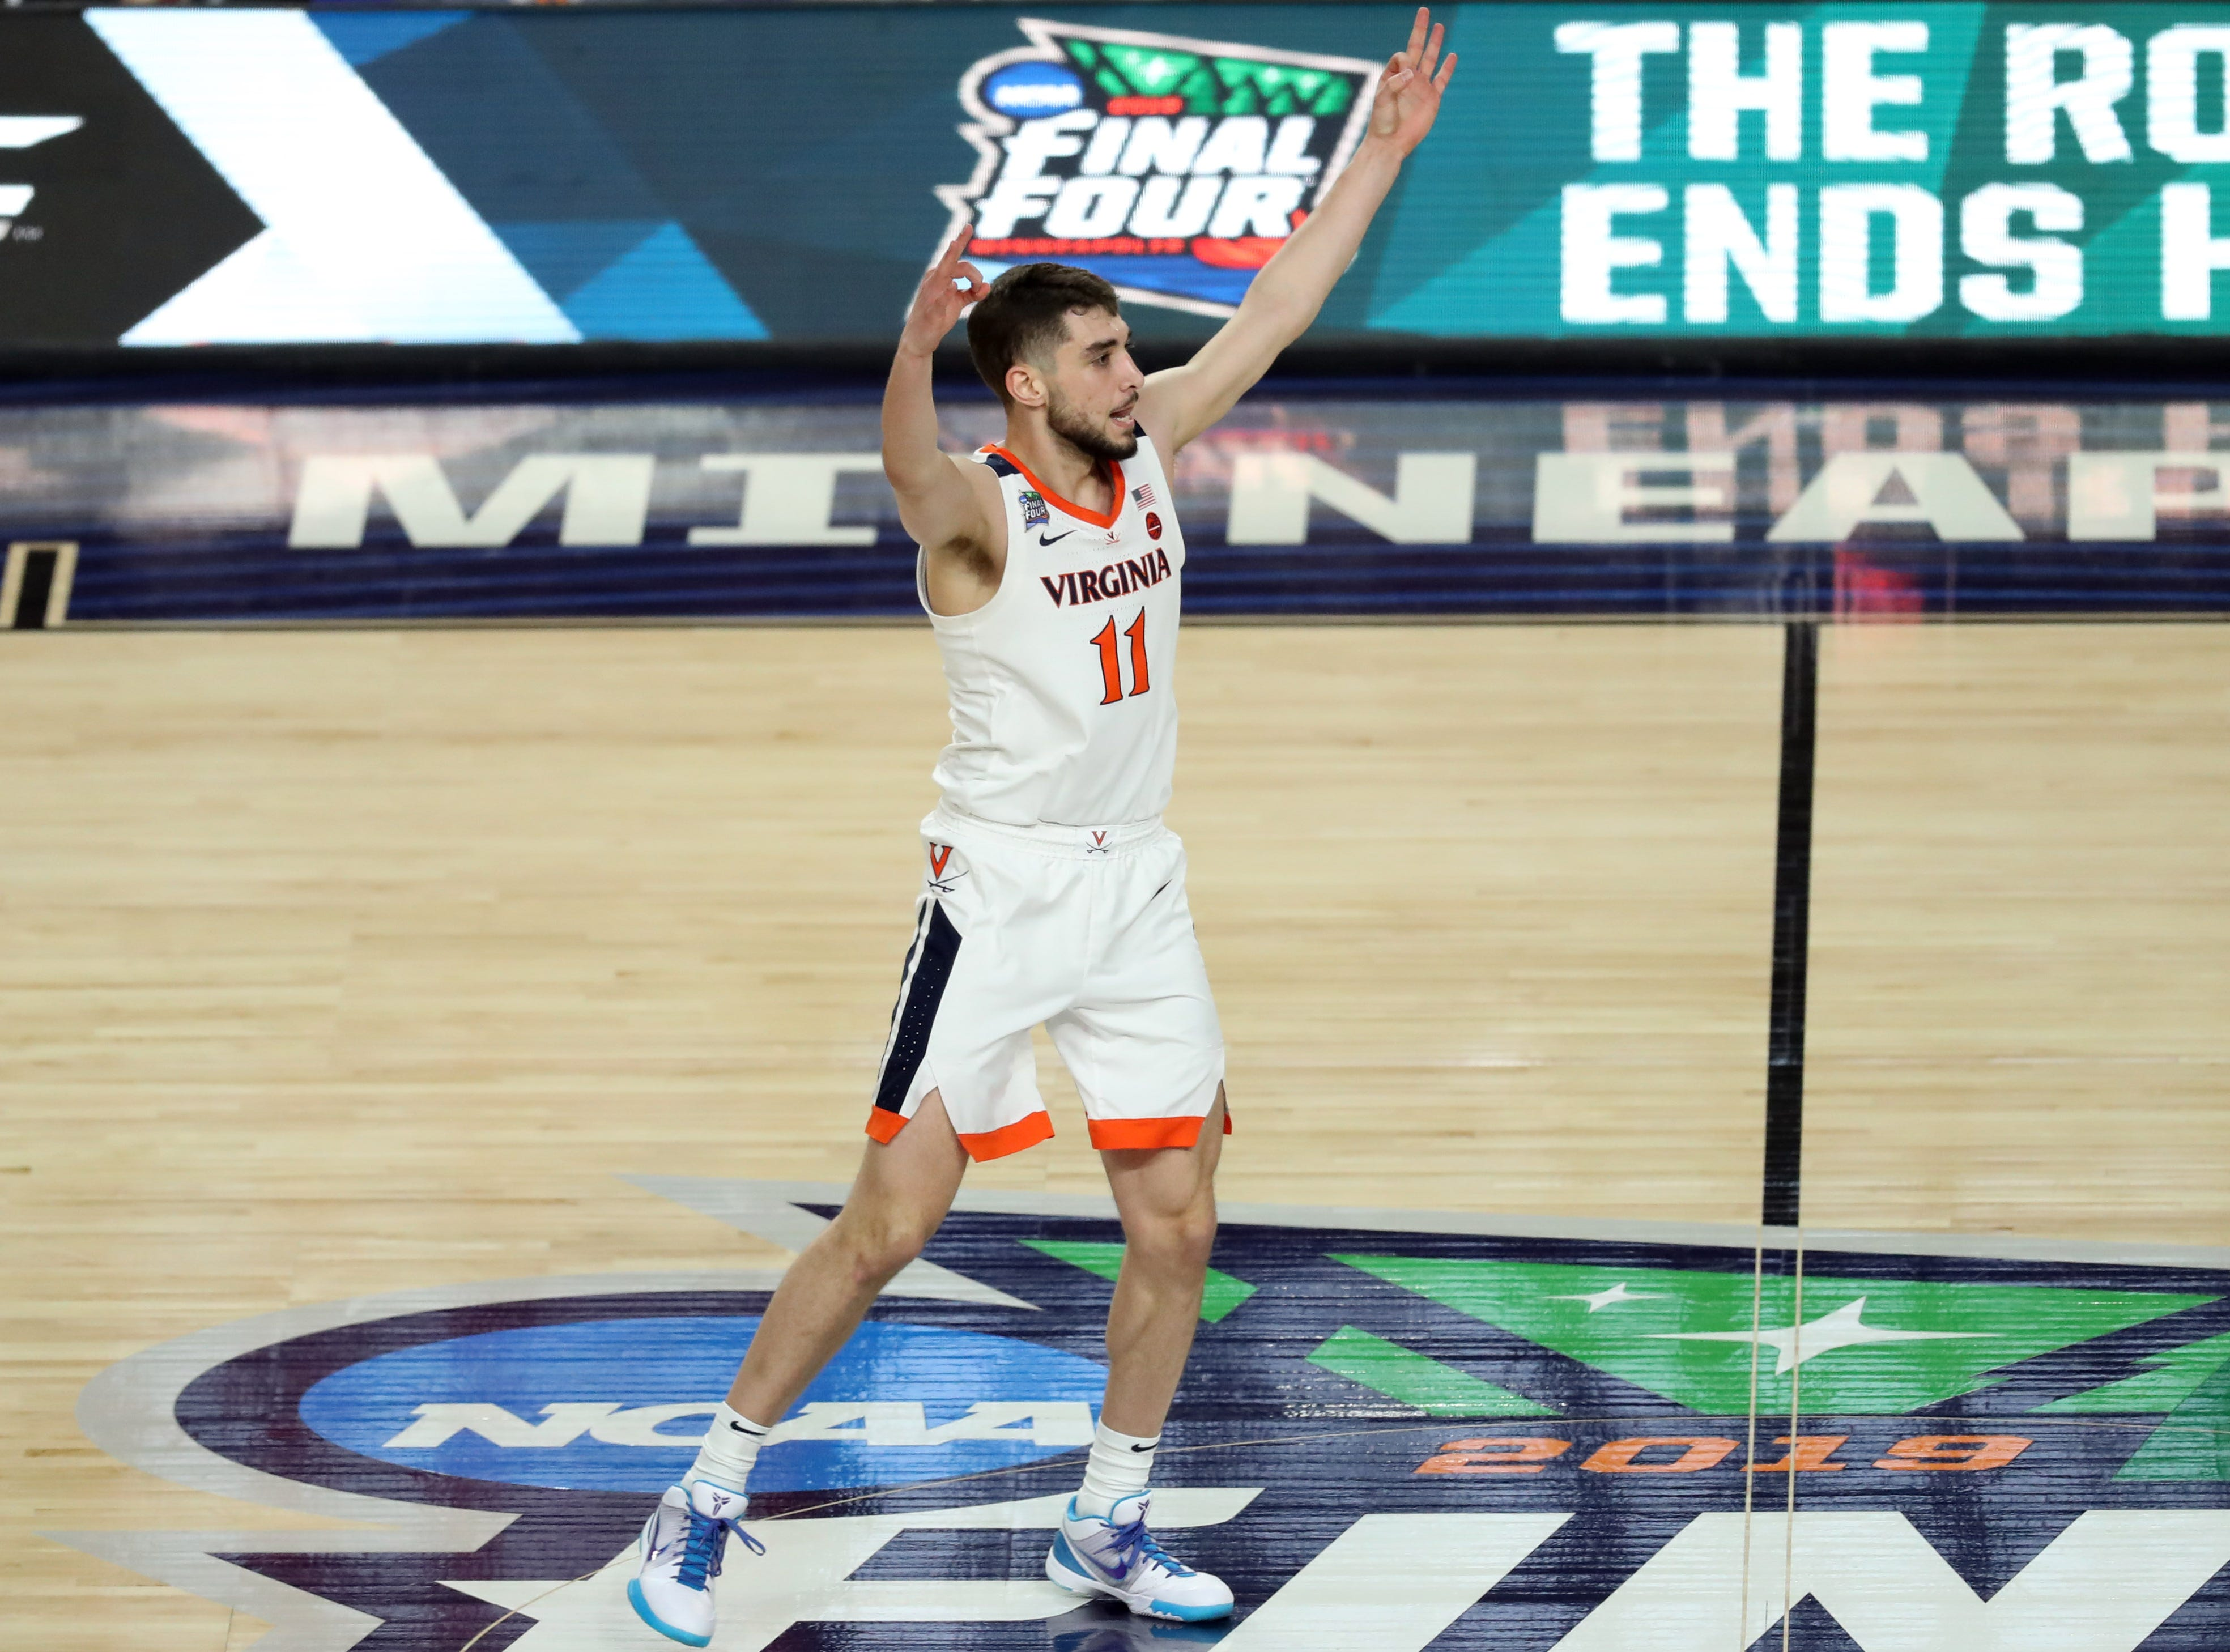 Apr 8, 2019; Minneapolis, MN, USA; Virginia Cavaliers guard Ty Jerome (11) celebrates after a three point shot during the first half against the Texas Tech Red Raiders in the championship game of the 2019 men's Final Four at US Bank Stadium. Mandatory Credit: Brace Hemmelgarn-USA TODAY Sports